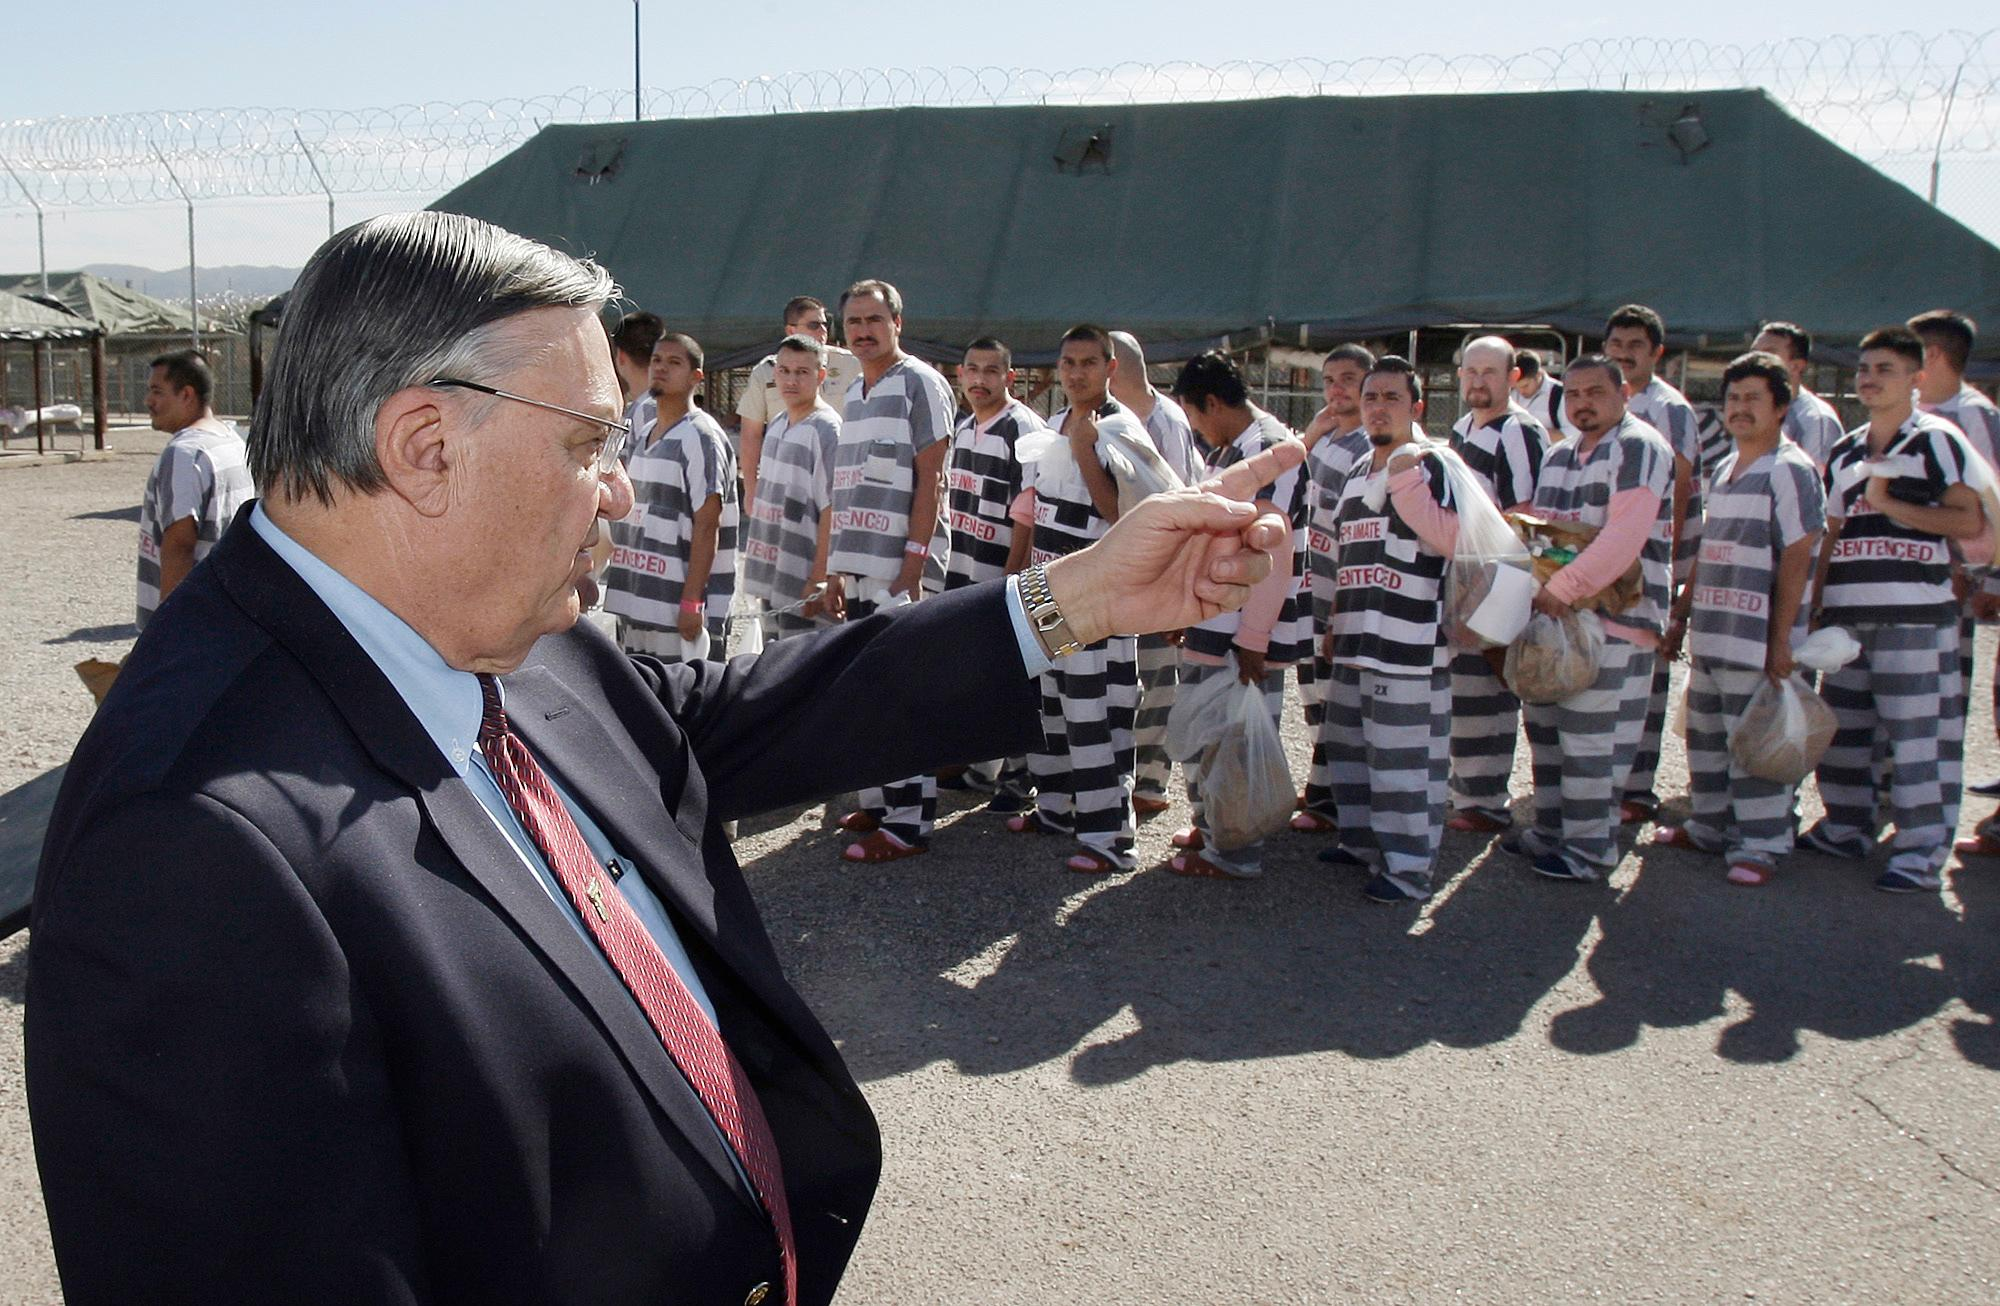 FILE- In this Feb. 4, 2009 file photo, Maricopa County Sheriff Joe Arpaio, left, orders approximately 200 convicted illegal immigrants handcuffed together in Tent City in Phoenix for incarceration until their sentences are served and they are deported to their home countries. Arpaio has been convicted of a criminal charge Monday, July 31, 2017, for disobeying a court order to stop traffic patrols that targeted immigrants in a conviction that marks a final rebuke for the former sheriff and politician who once drew strong popularity from such crackdowns but was booted from office amid voter frustrations over his deepening legal troubles.(AP Photo/Ross D. Franklin, File)